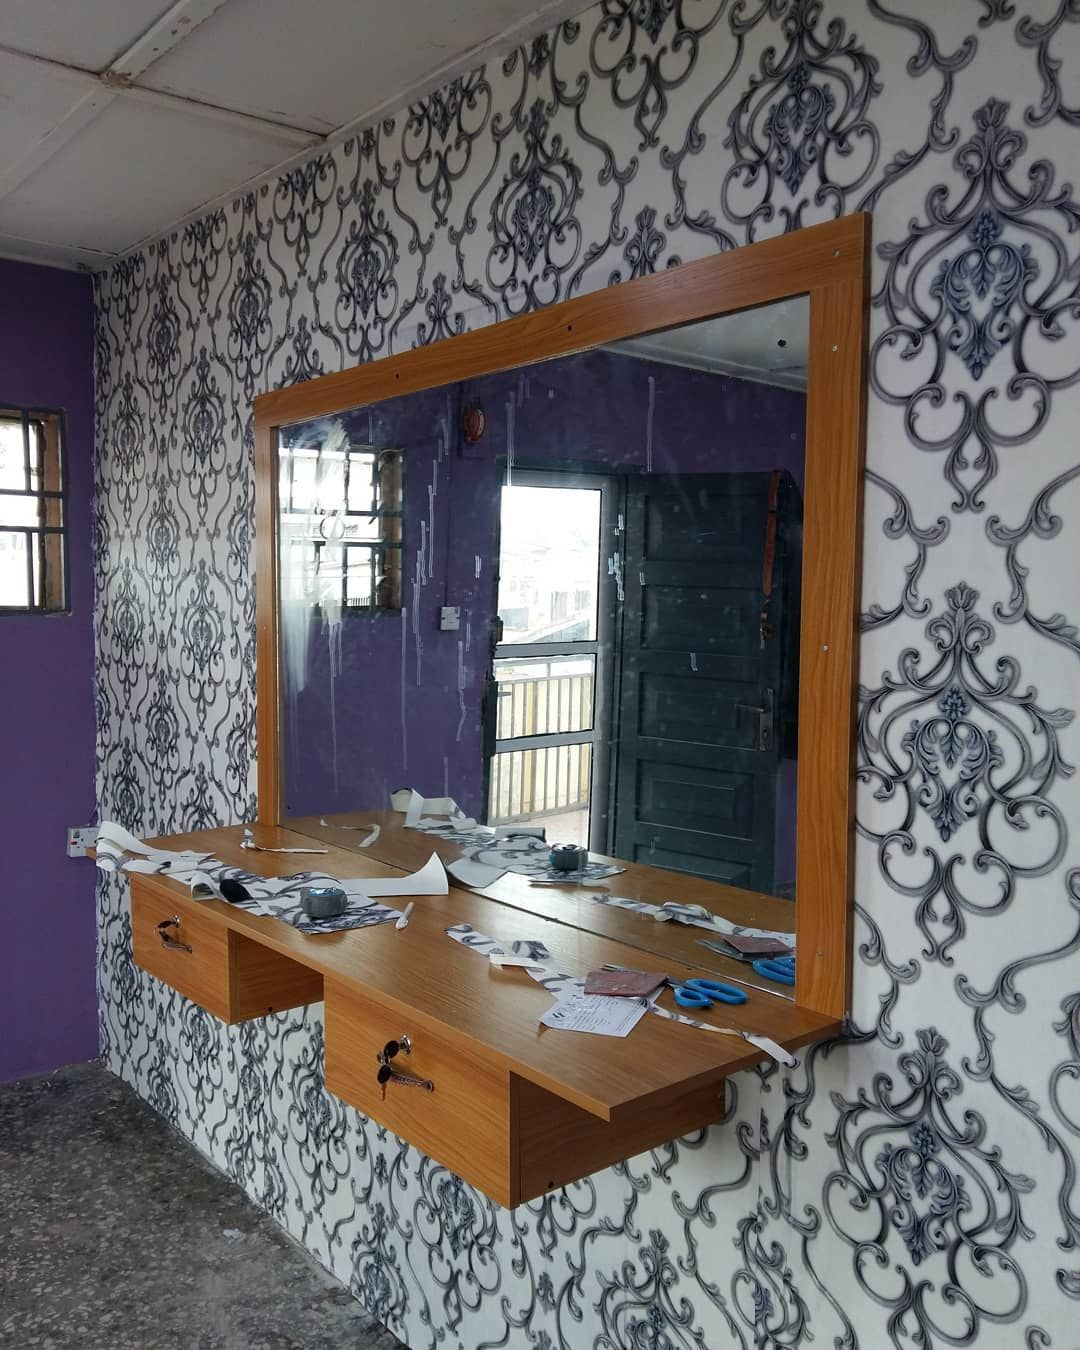 Perfected 3d Wallpaper Installation It S Our Work We Gives Quality Works And Excellen 3d Wallpaper Installation How To Install Wallpaper Interior Design